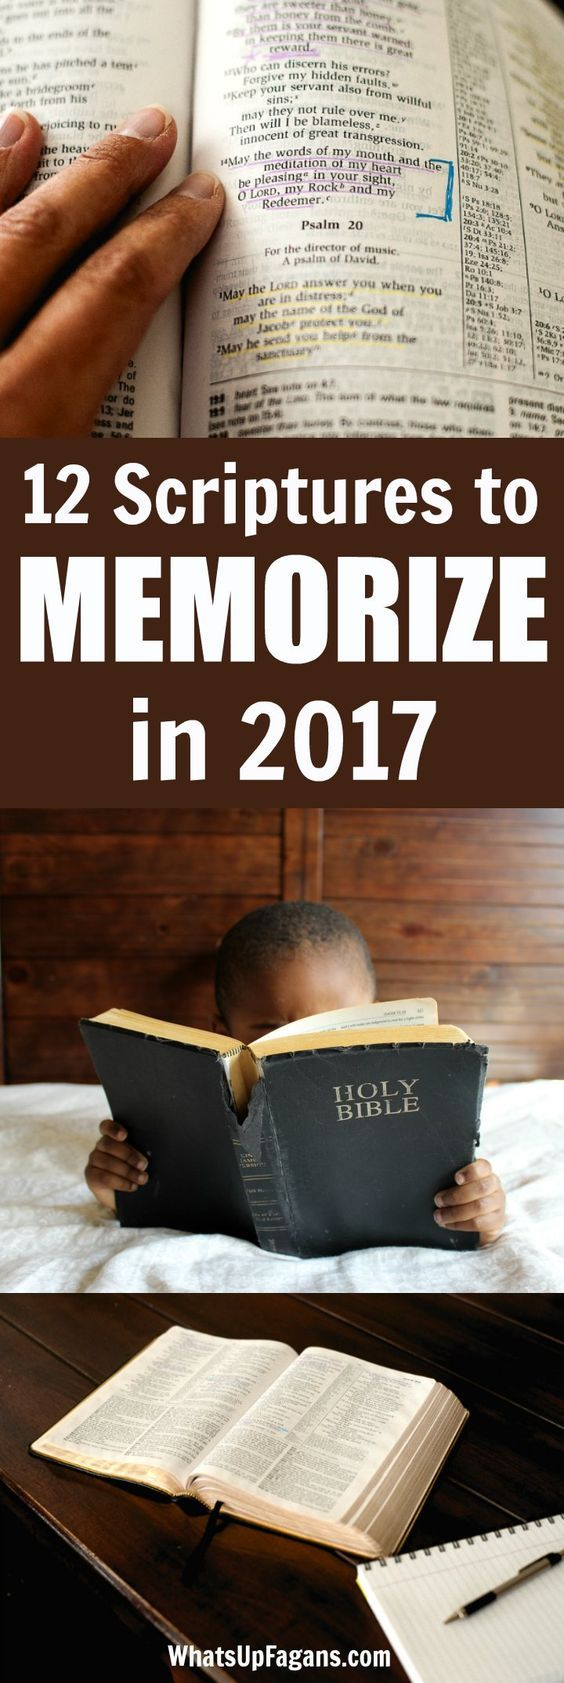 Free scripture printables - Scriptures to memorize in 2017 - Mormon LDS Scripture verses - verses to memorize - Bible scripture verses. Christian goals and new year resolutions.